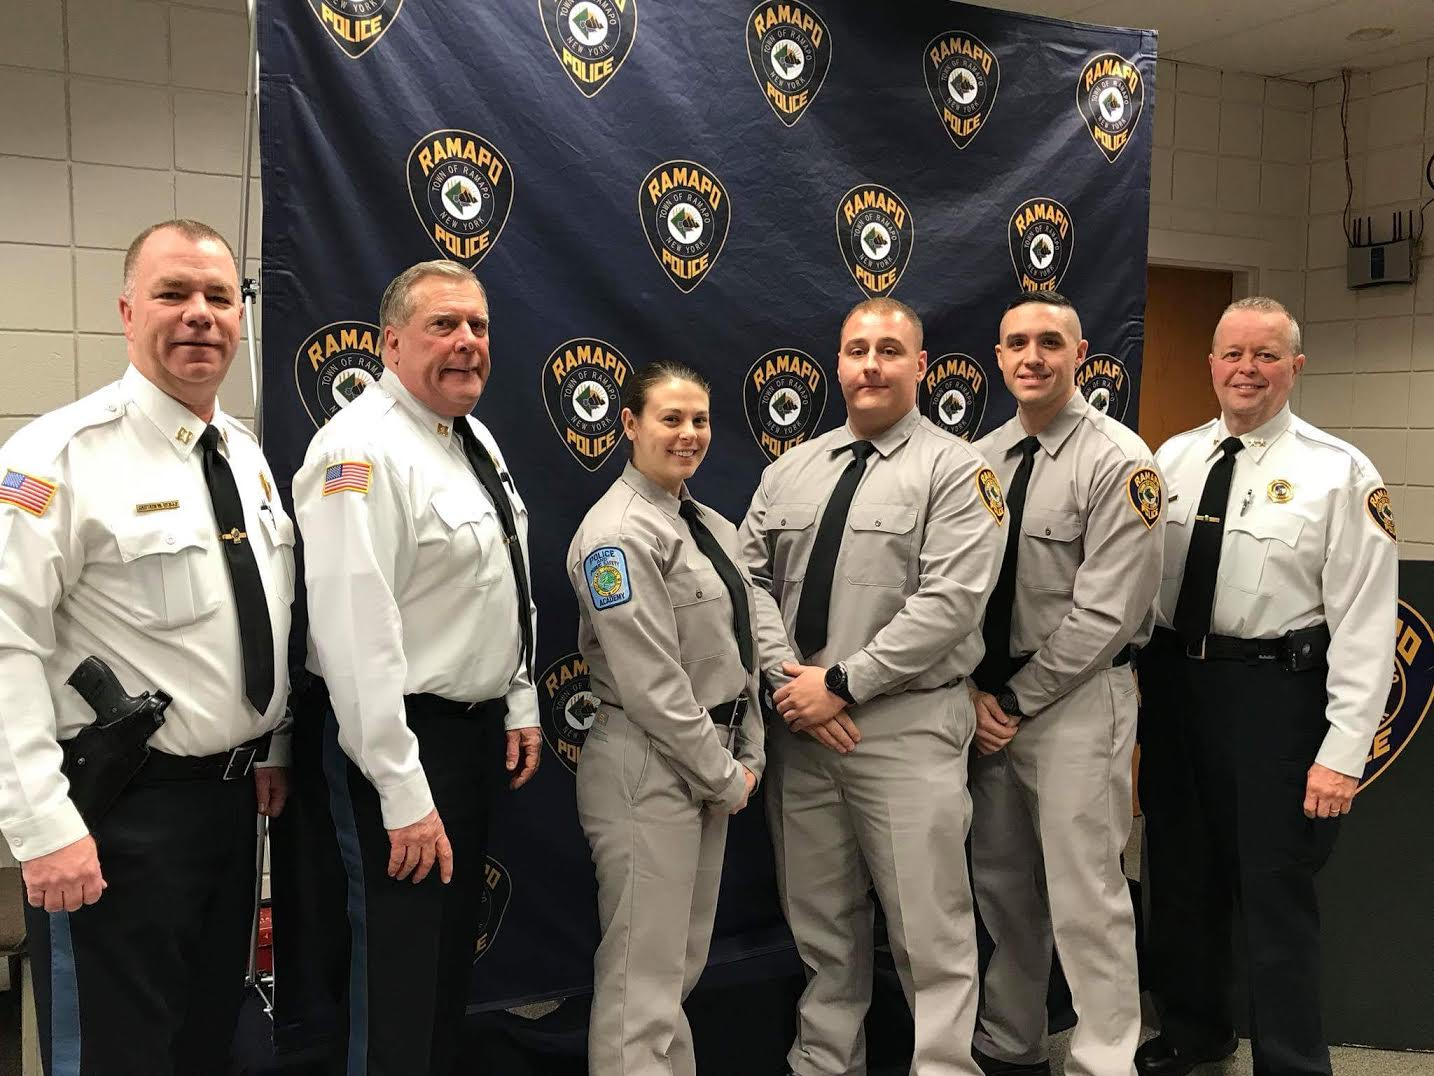 Three new officers in Ramapo